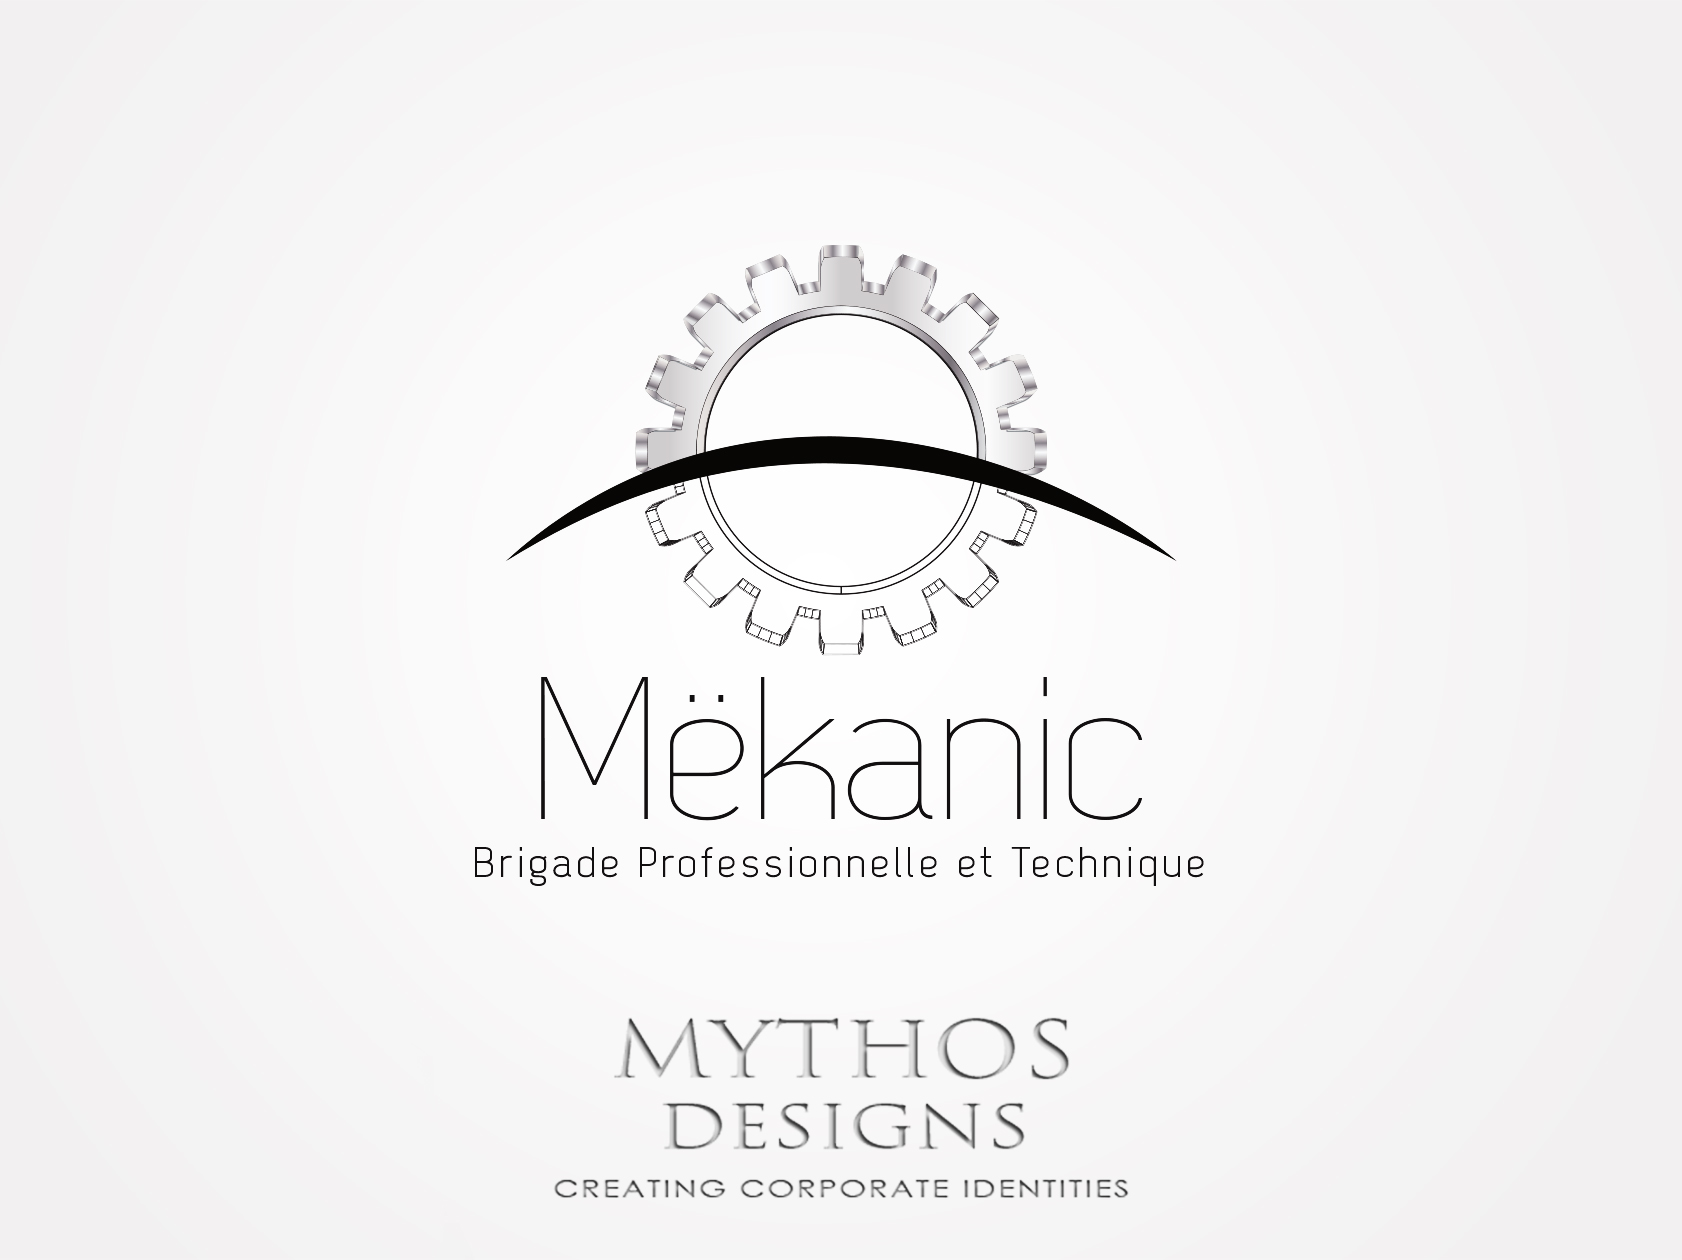 Logo Design by Mythos Designs - Entry No. 166 in the Logo Design Contest Creative Logo Design for MËKANIC - Professional and technical squad.